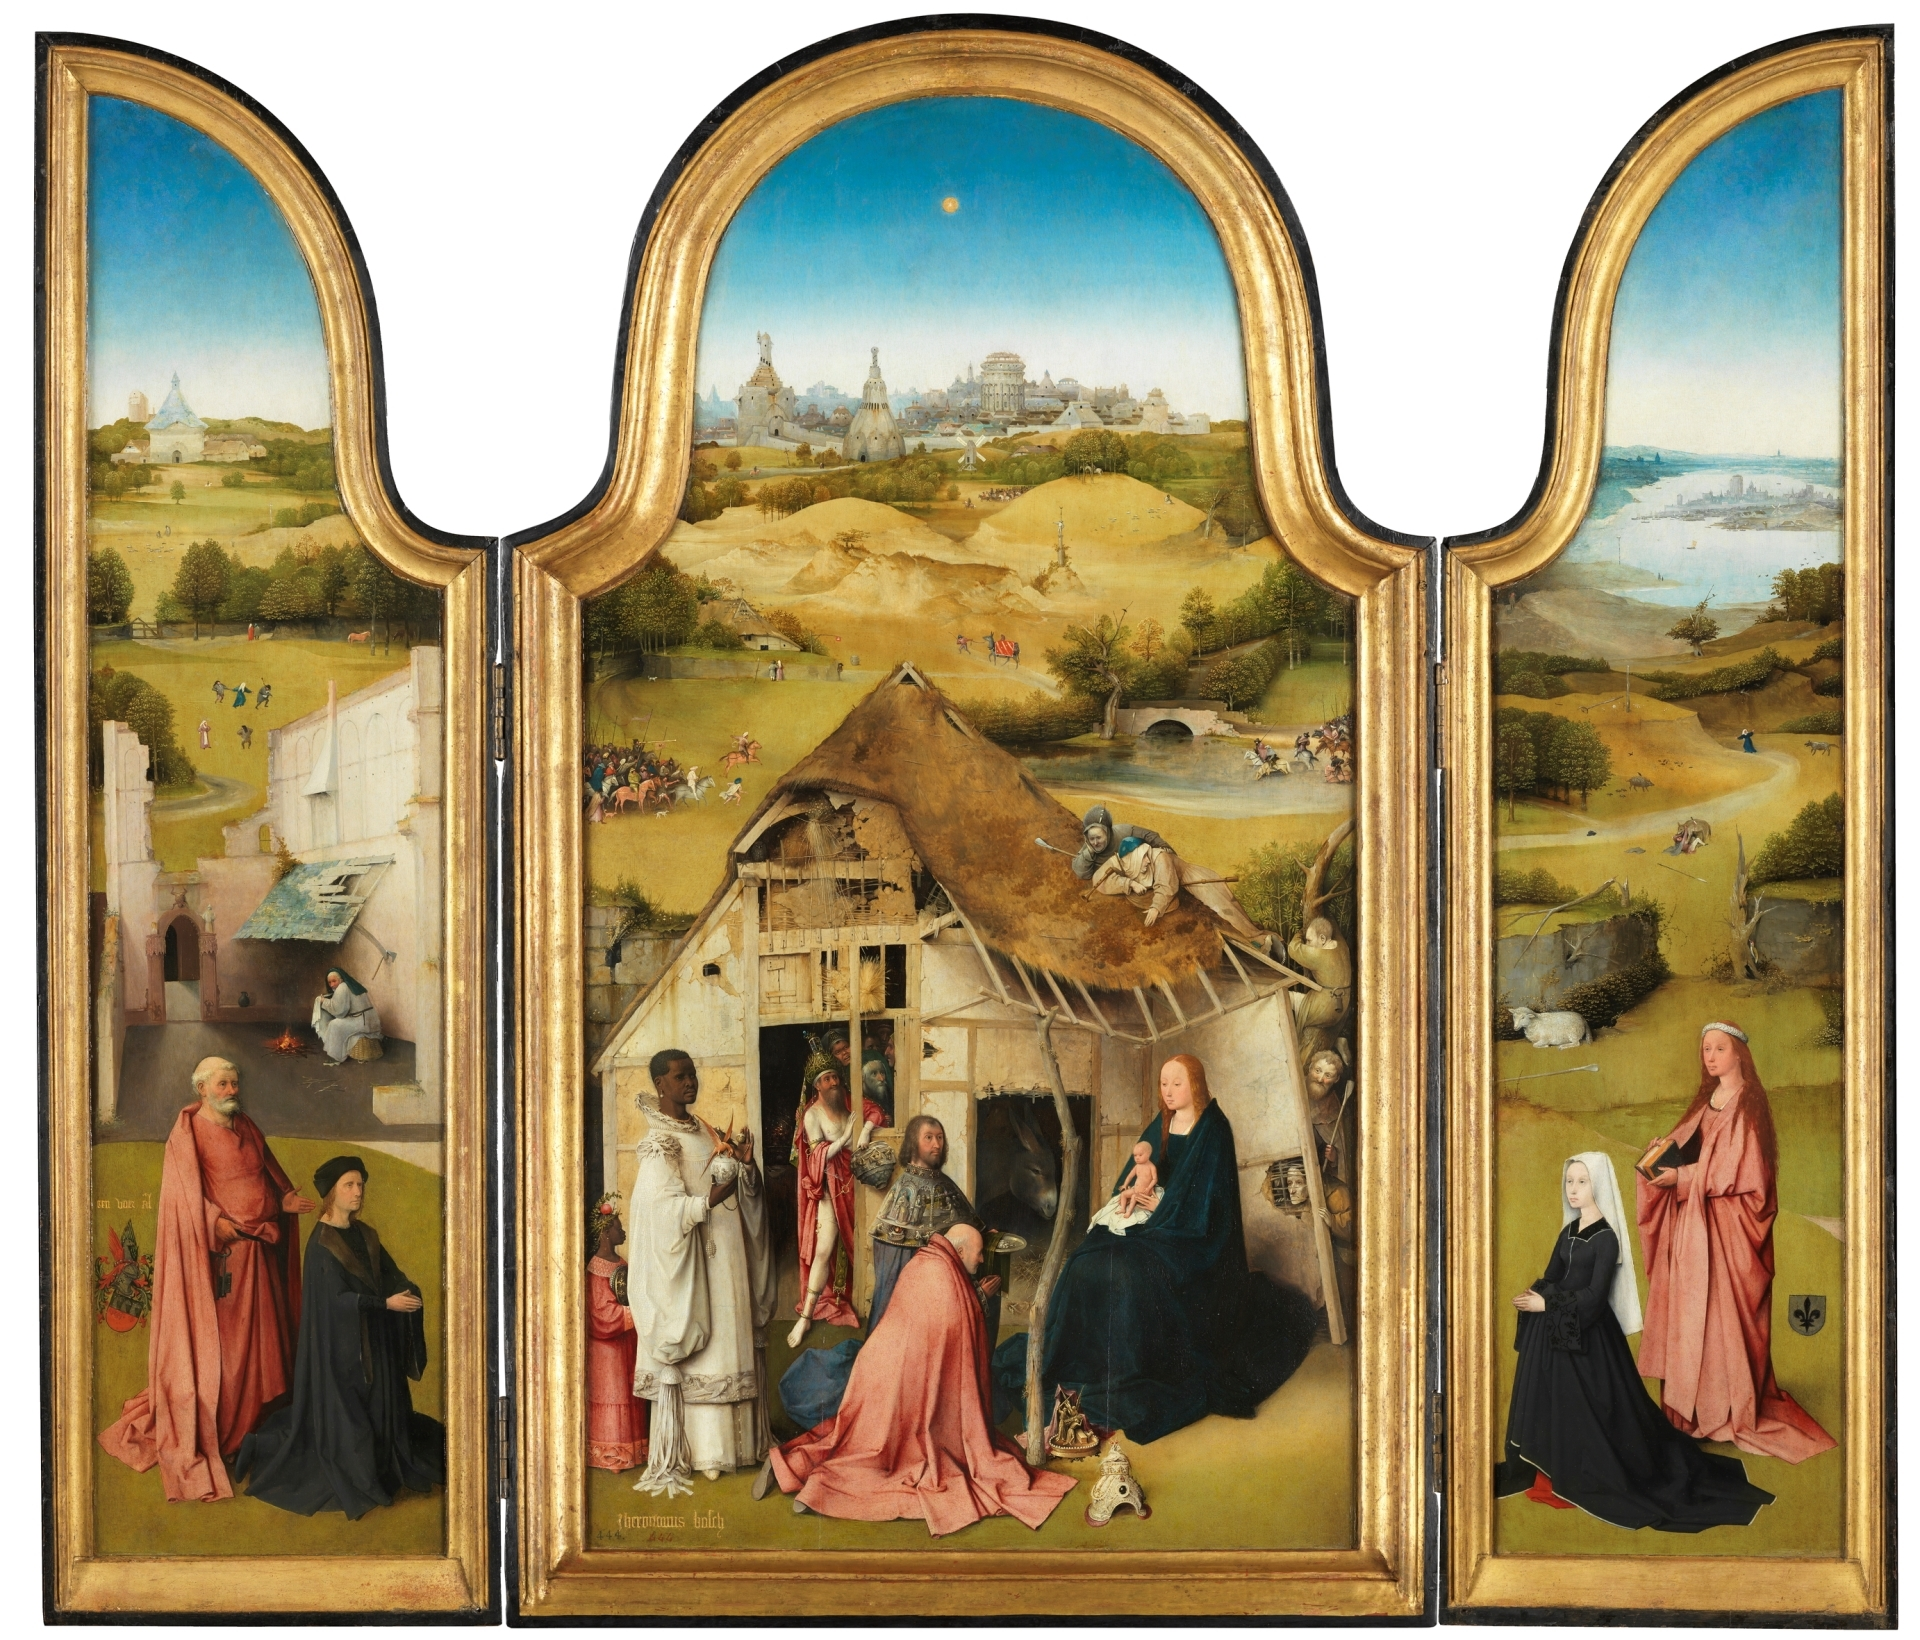 The Adoration of the Magi, cr. 1495, Hieronymus Bosch, Netherlands